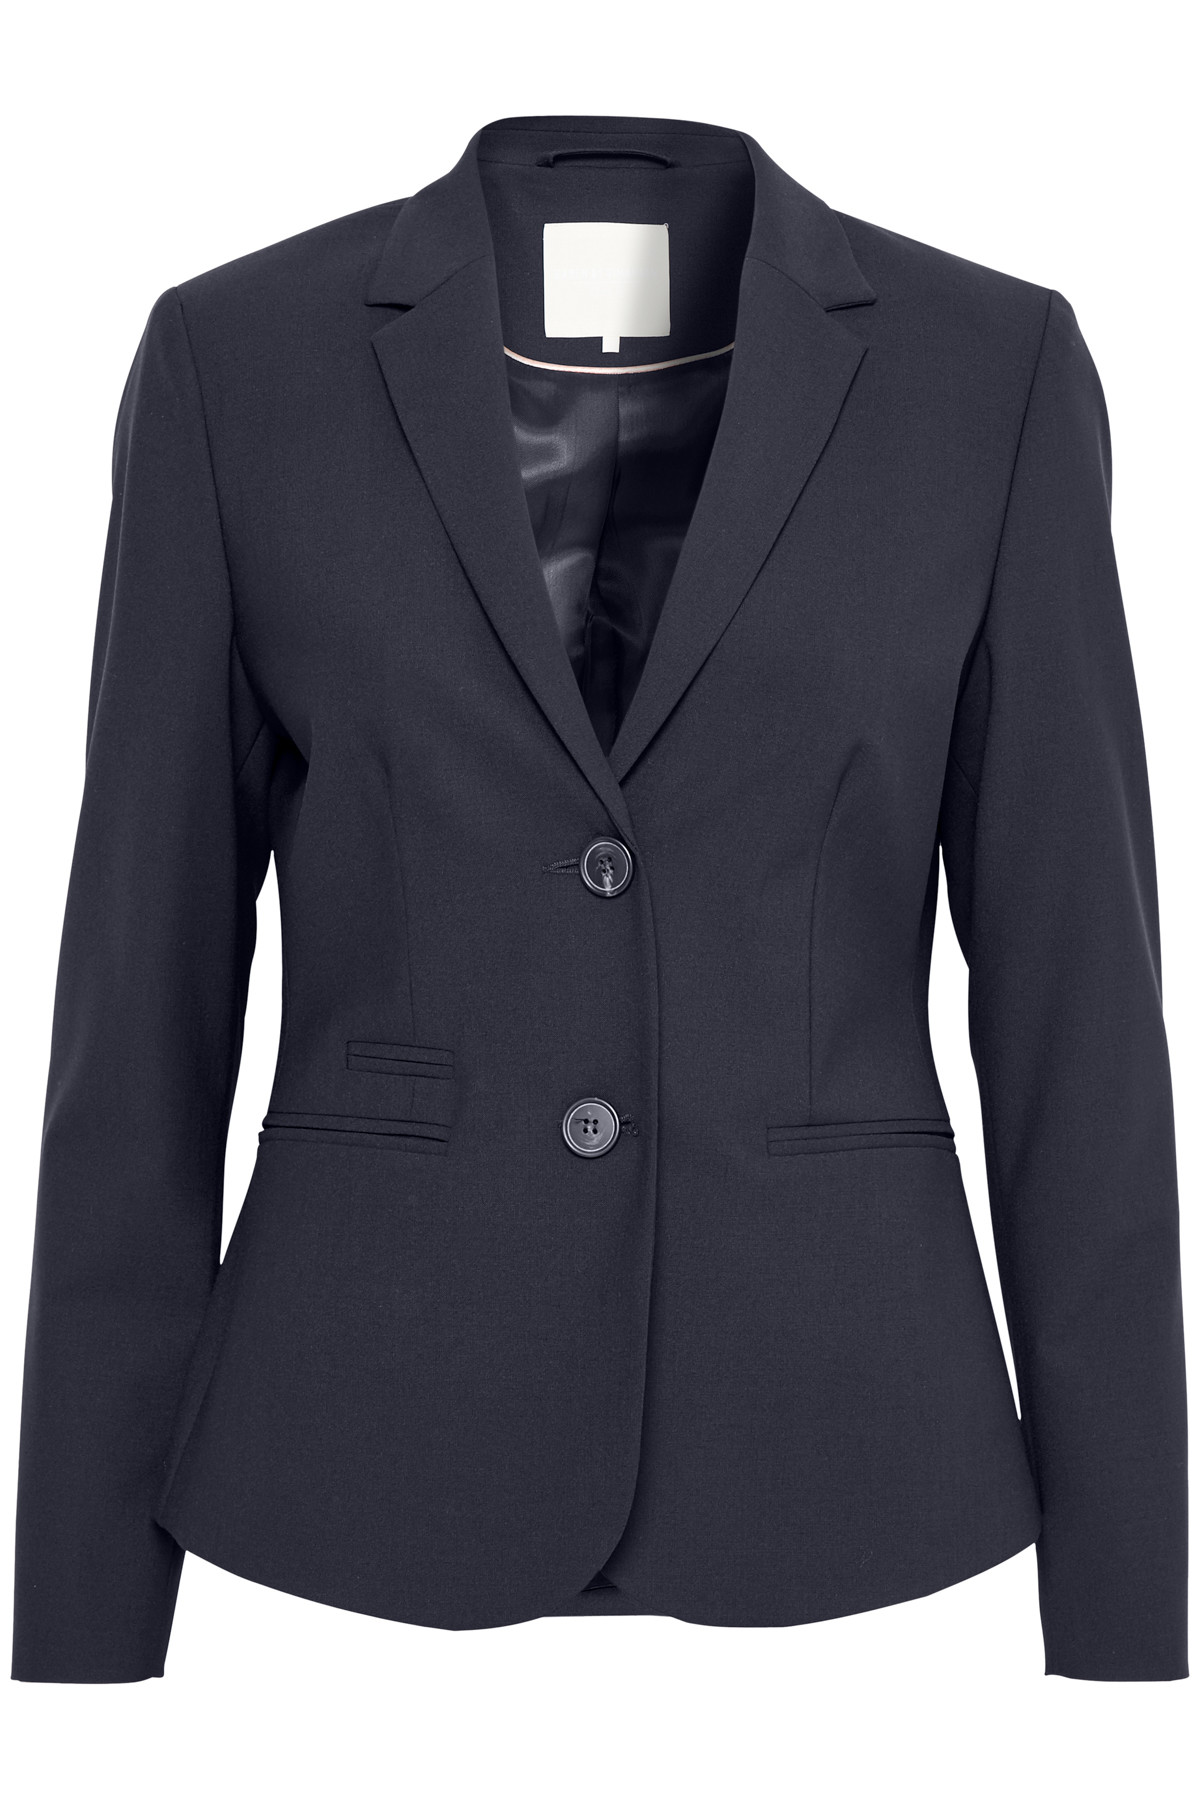 Image of   KAREN BY SIMONSEN SYDNEY BLAZER 10102001 D (Dark Blue 40520, 44)